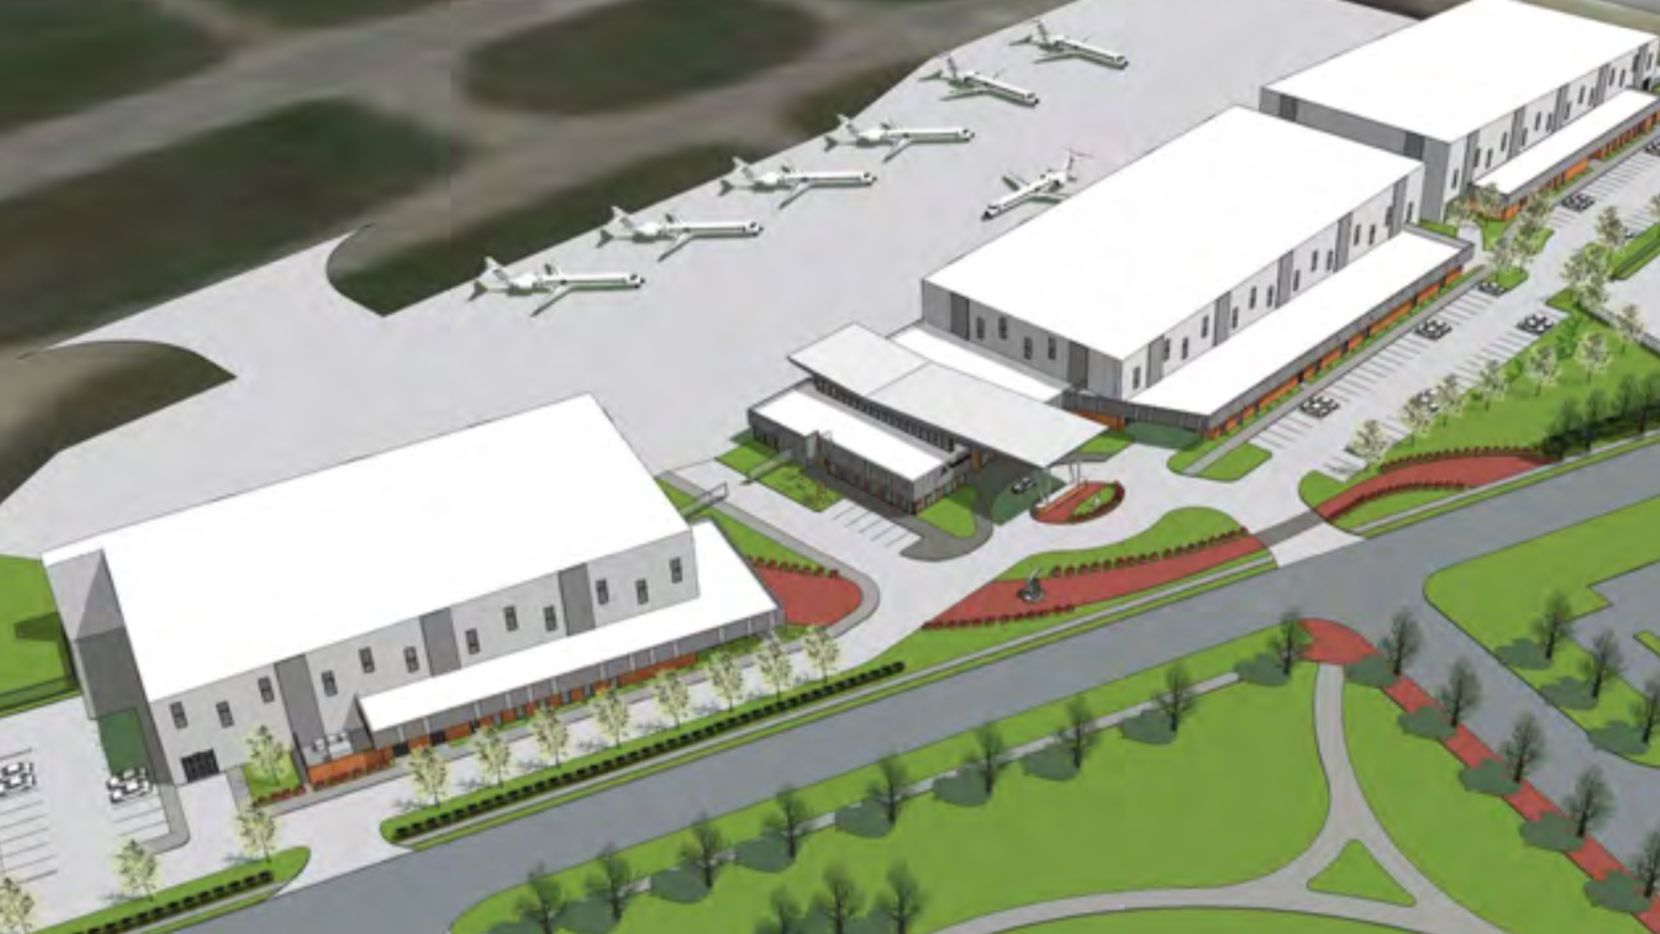 Houston-based Galaxy Aviation is planning a new terminal and hangars at Addison Airport.